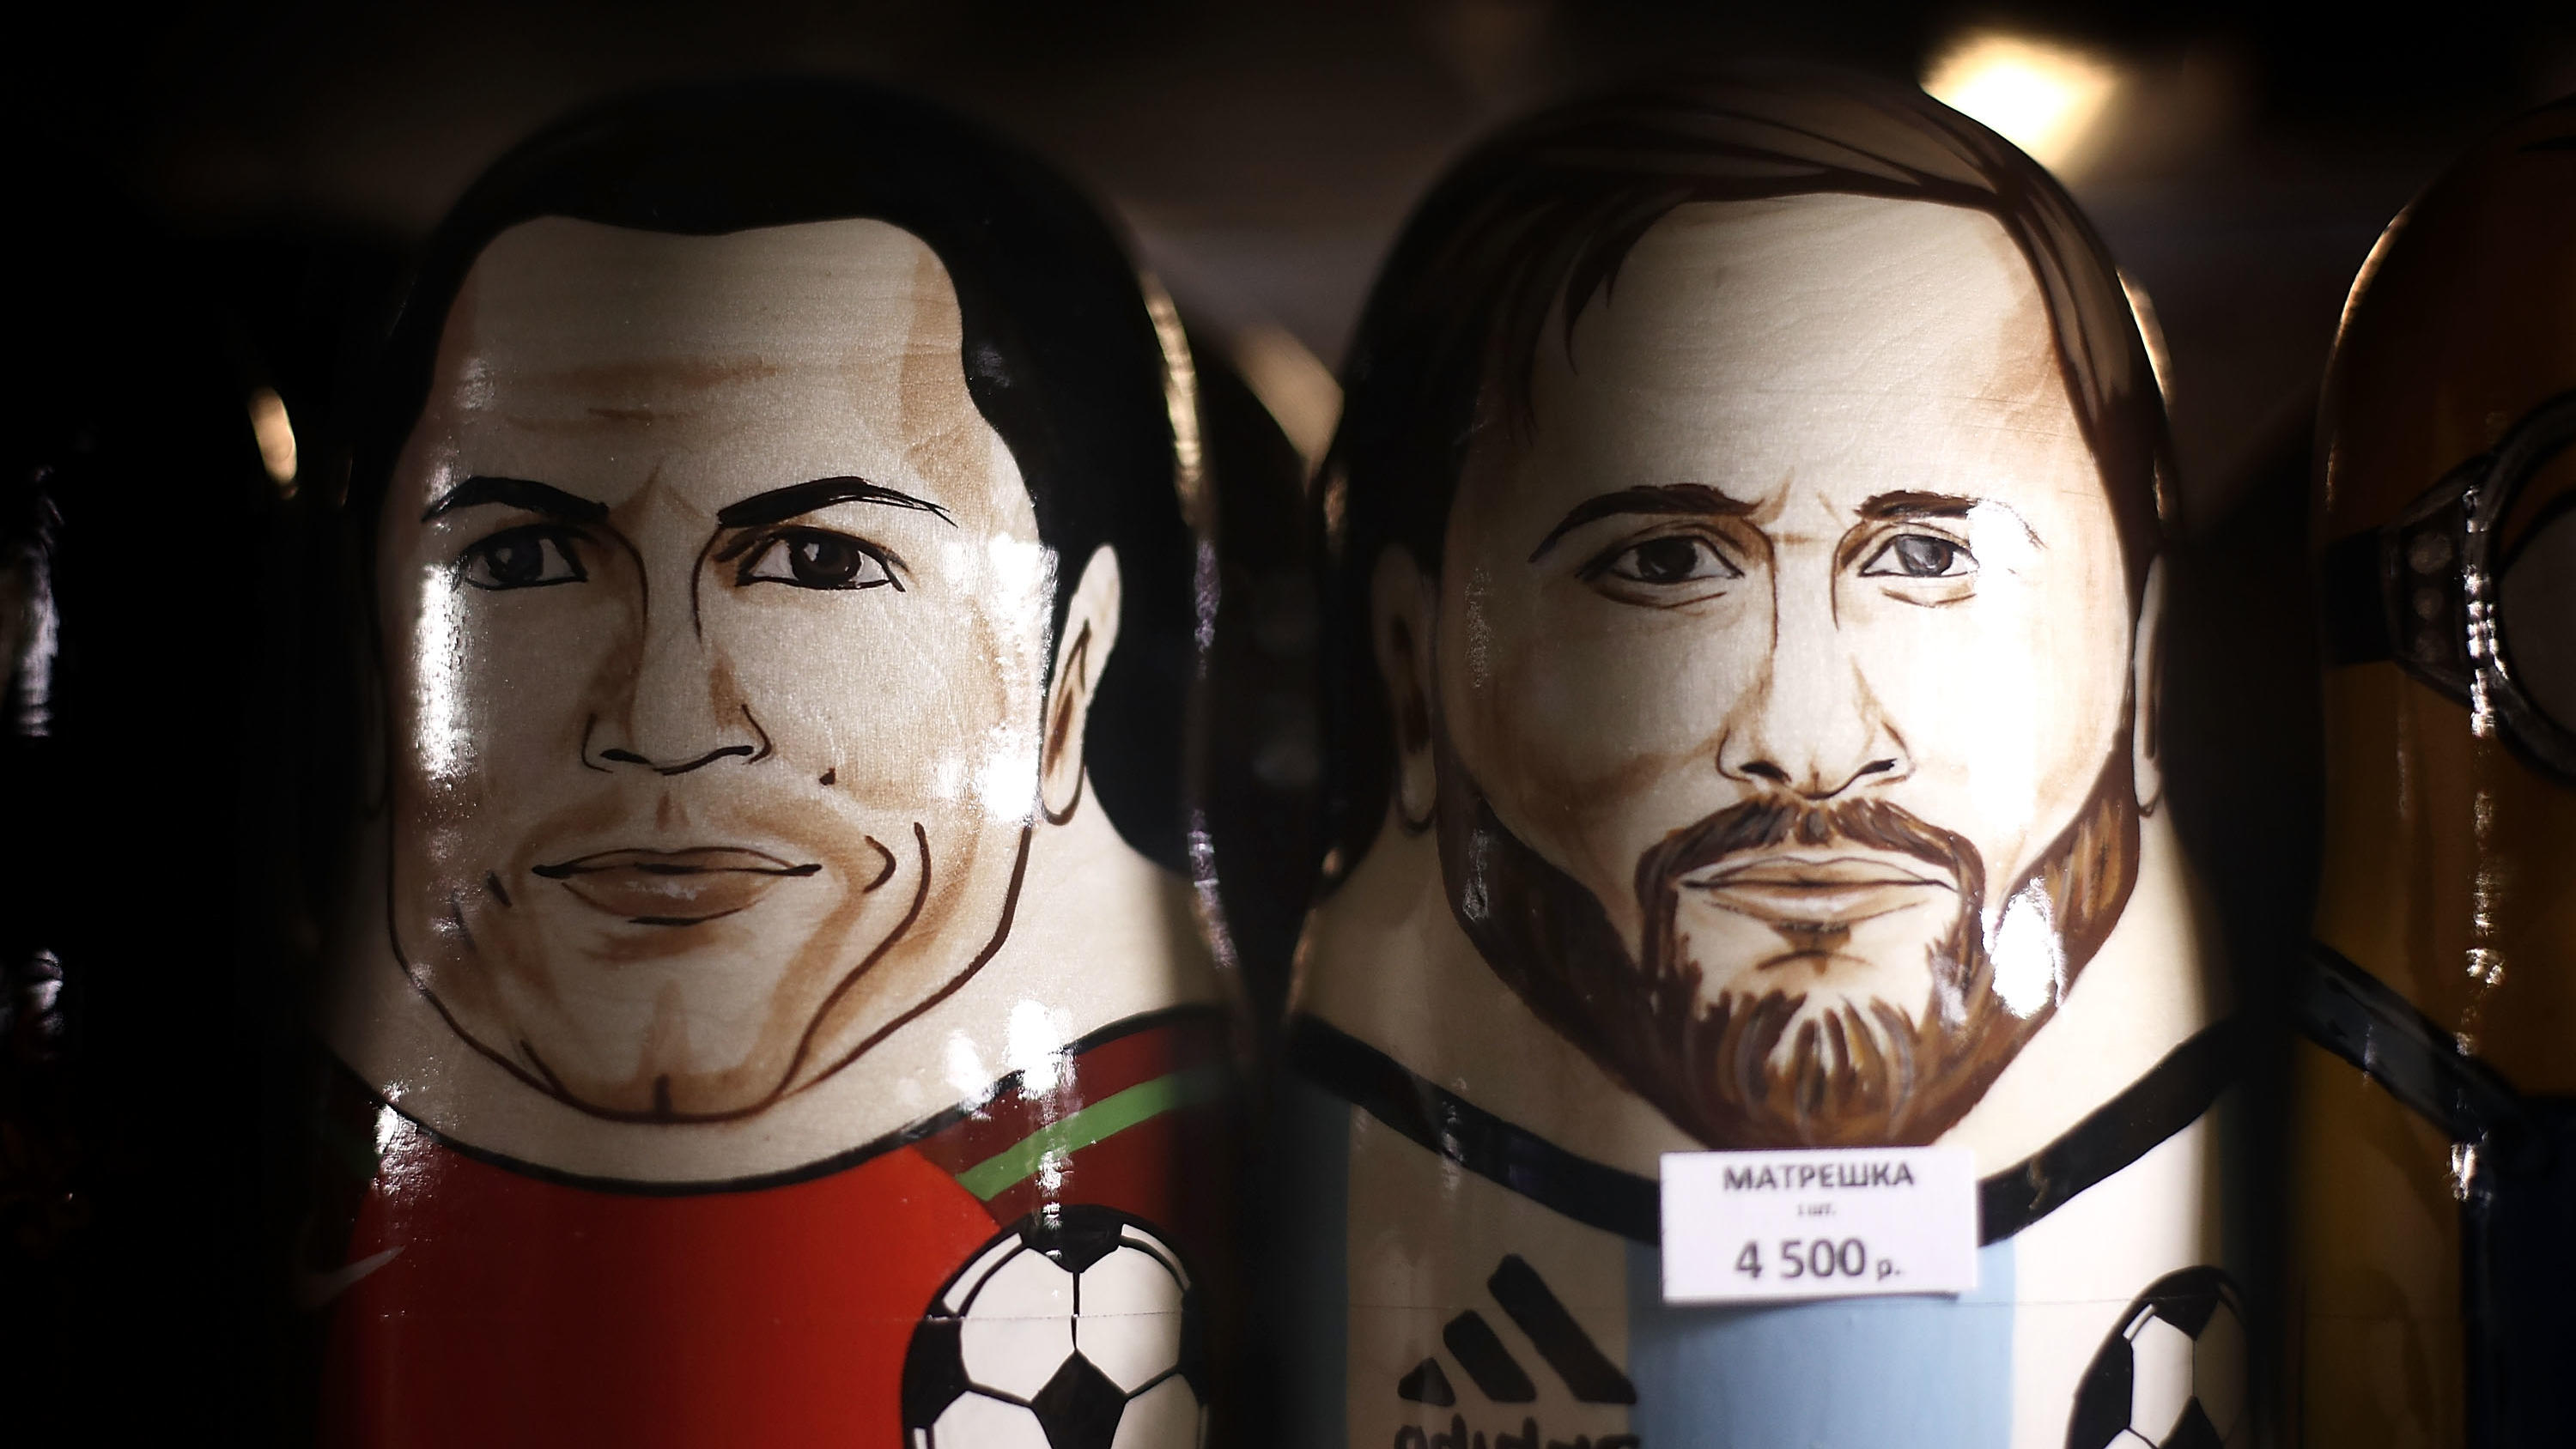 MOSCOW, RUSSIA - JUNE 08:  Russian Matryoshka dolls of Cristiano Ronaldo of Portugal and Lionel Messi of Argentina are seen in a souvenir souvenir shop ahead of the 2018 FIFA World Cup on June 8, 2018 in Moscow, Russia.  (Photo by Ryan Pierse/Getty I